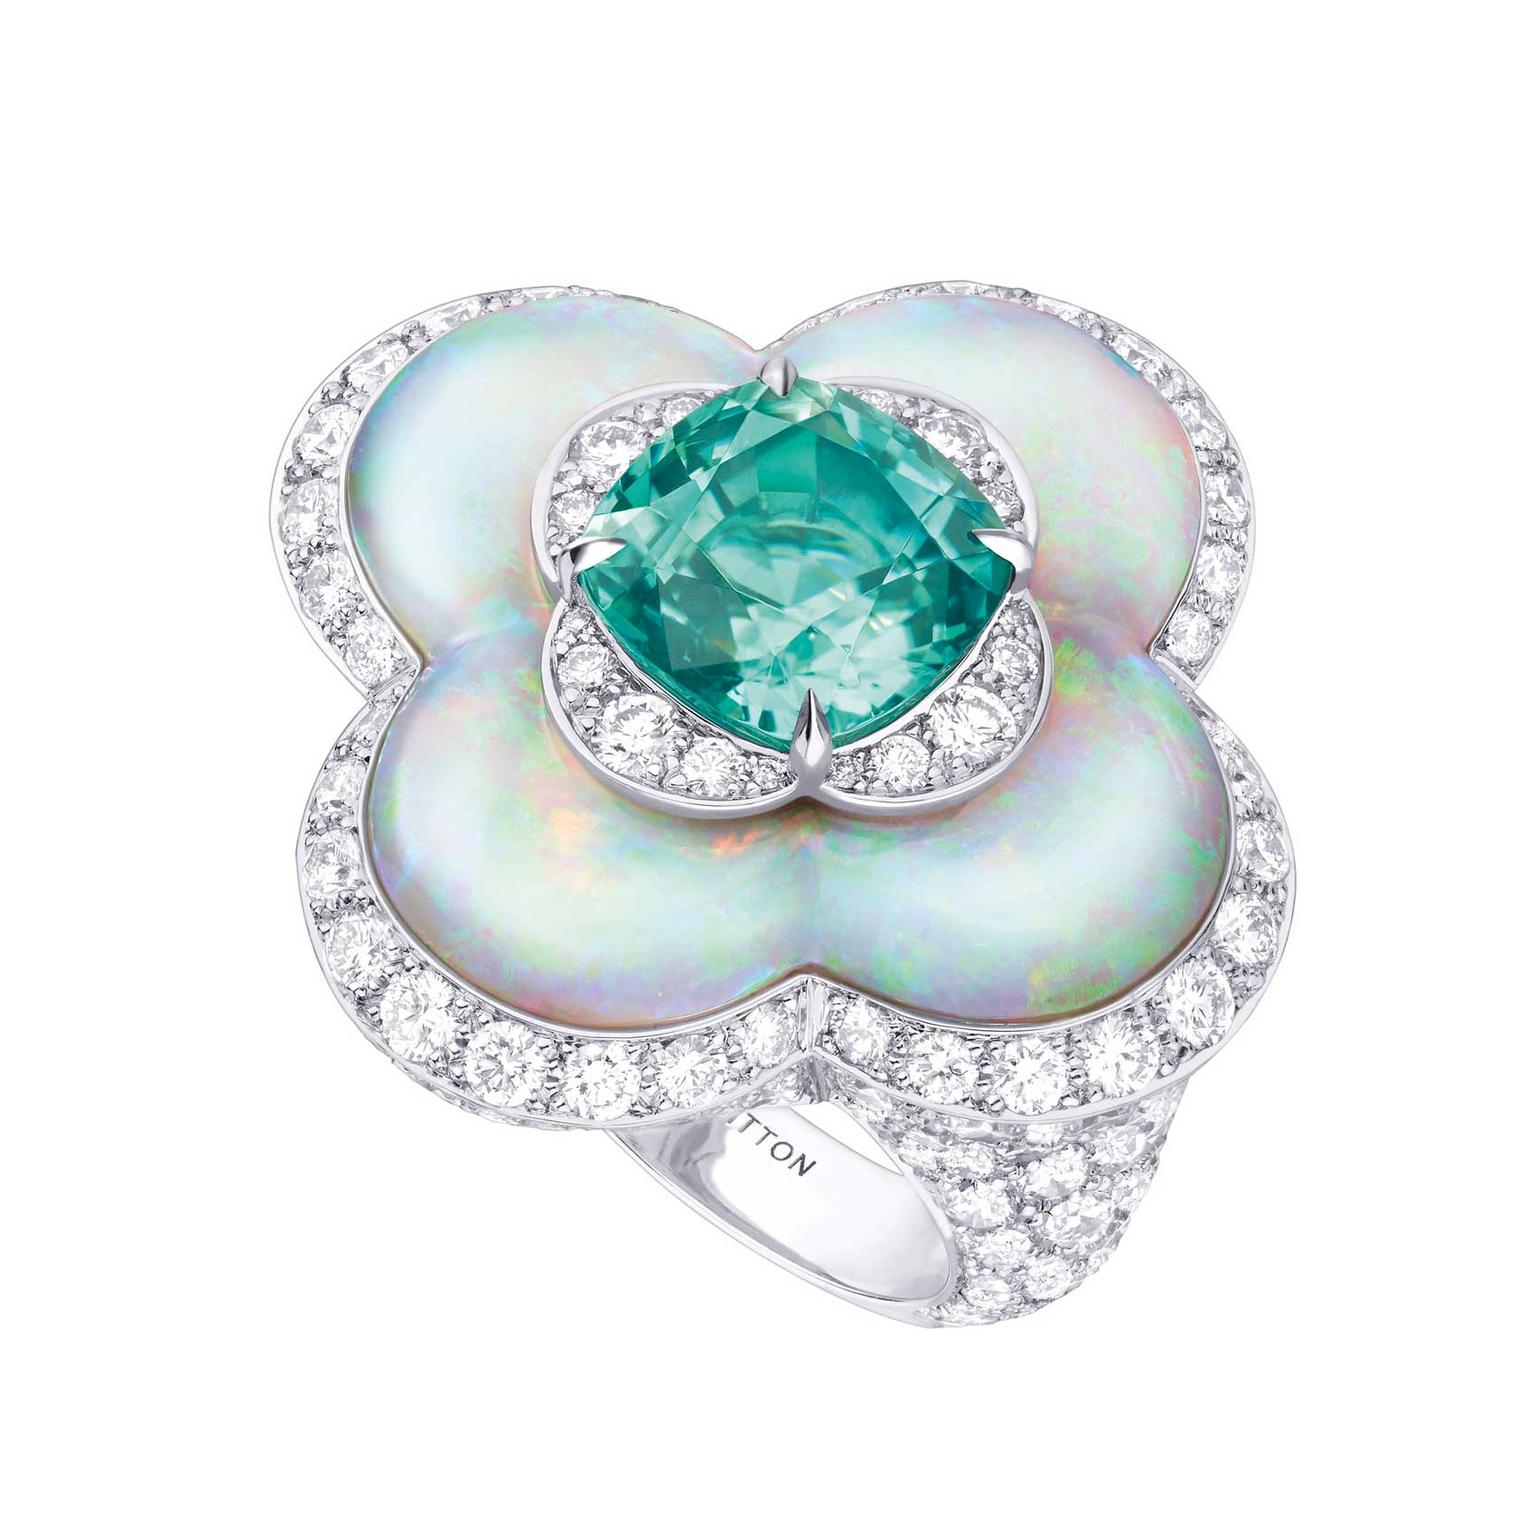 Louis Vuitton Blossom tourmaline and opal ring